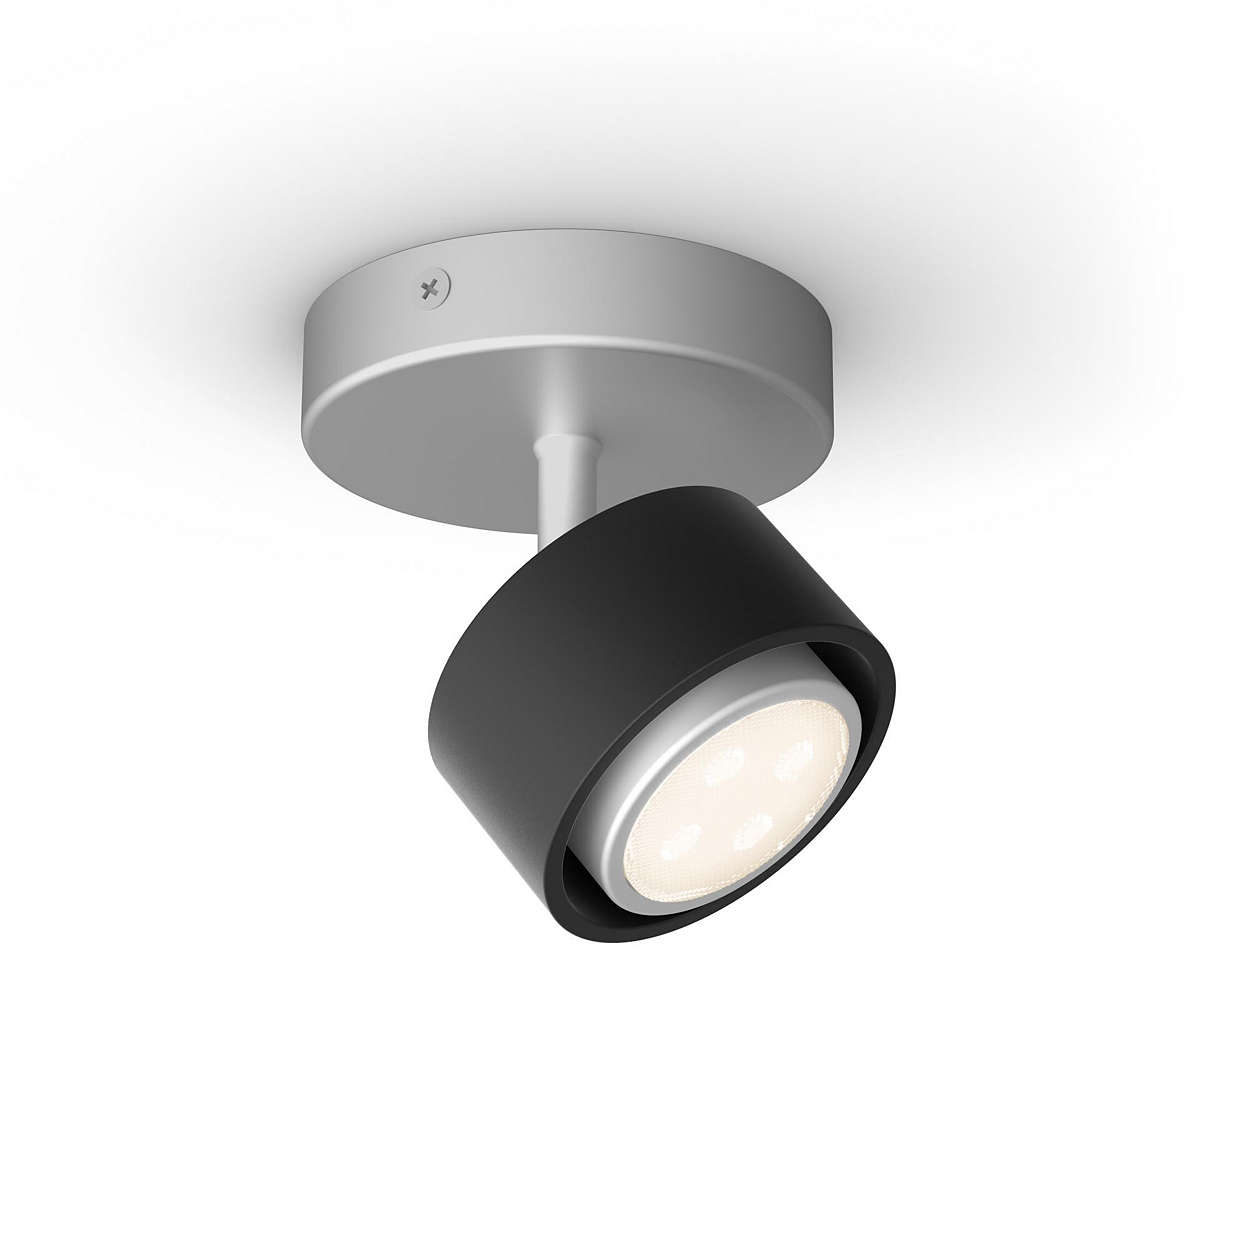 Comfortable LED light that is easy on your eyes